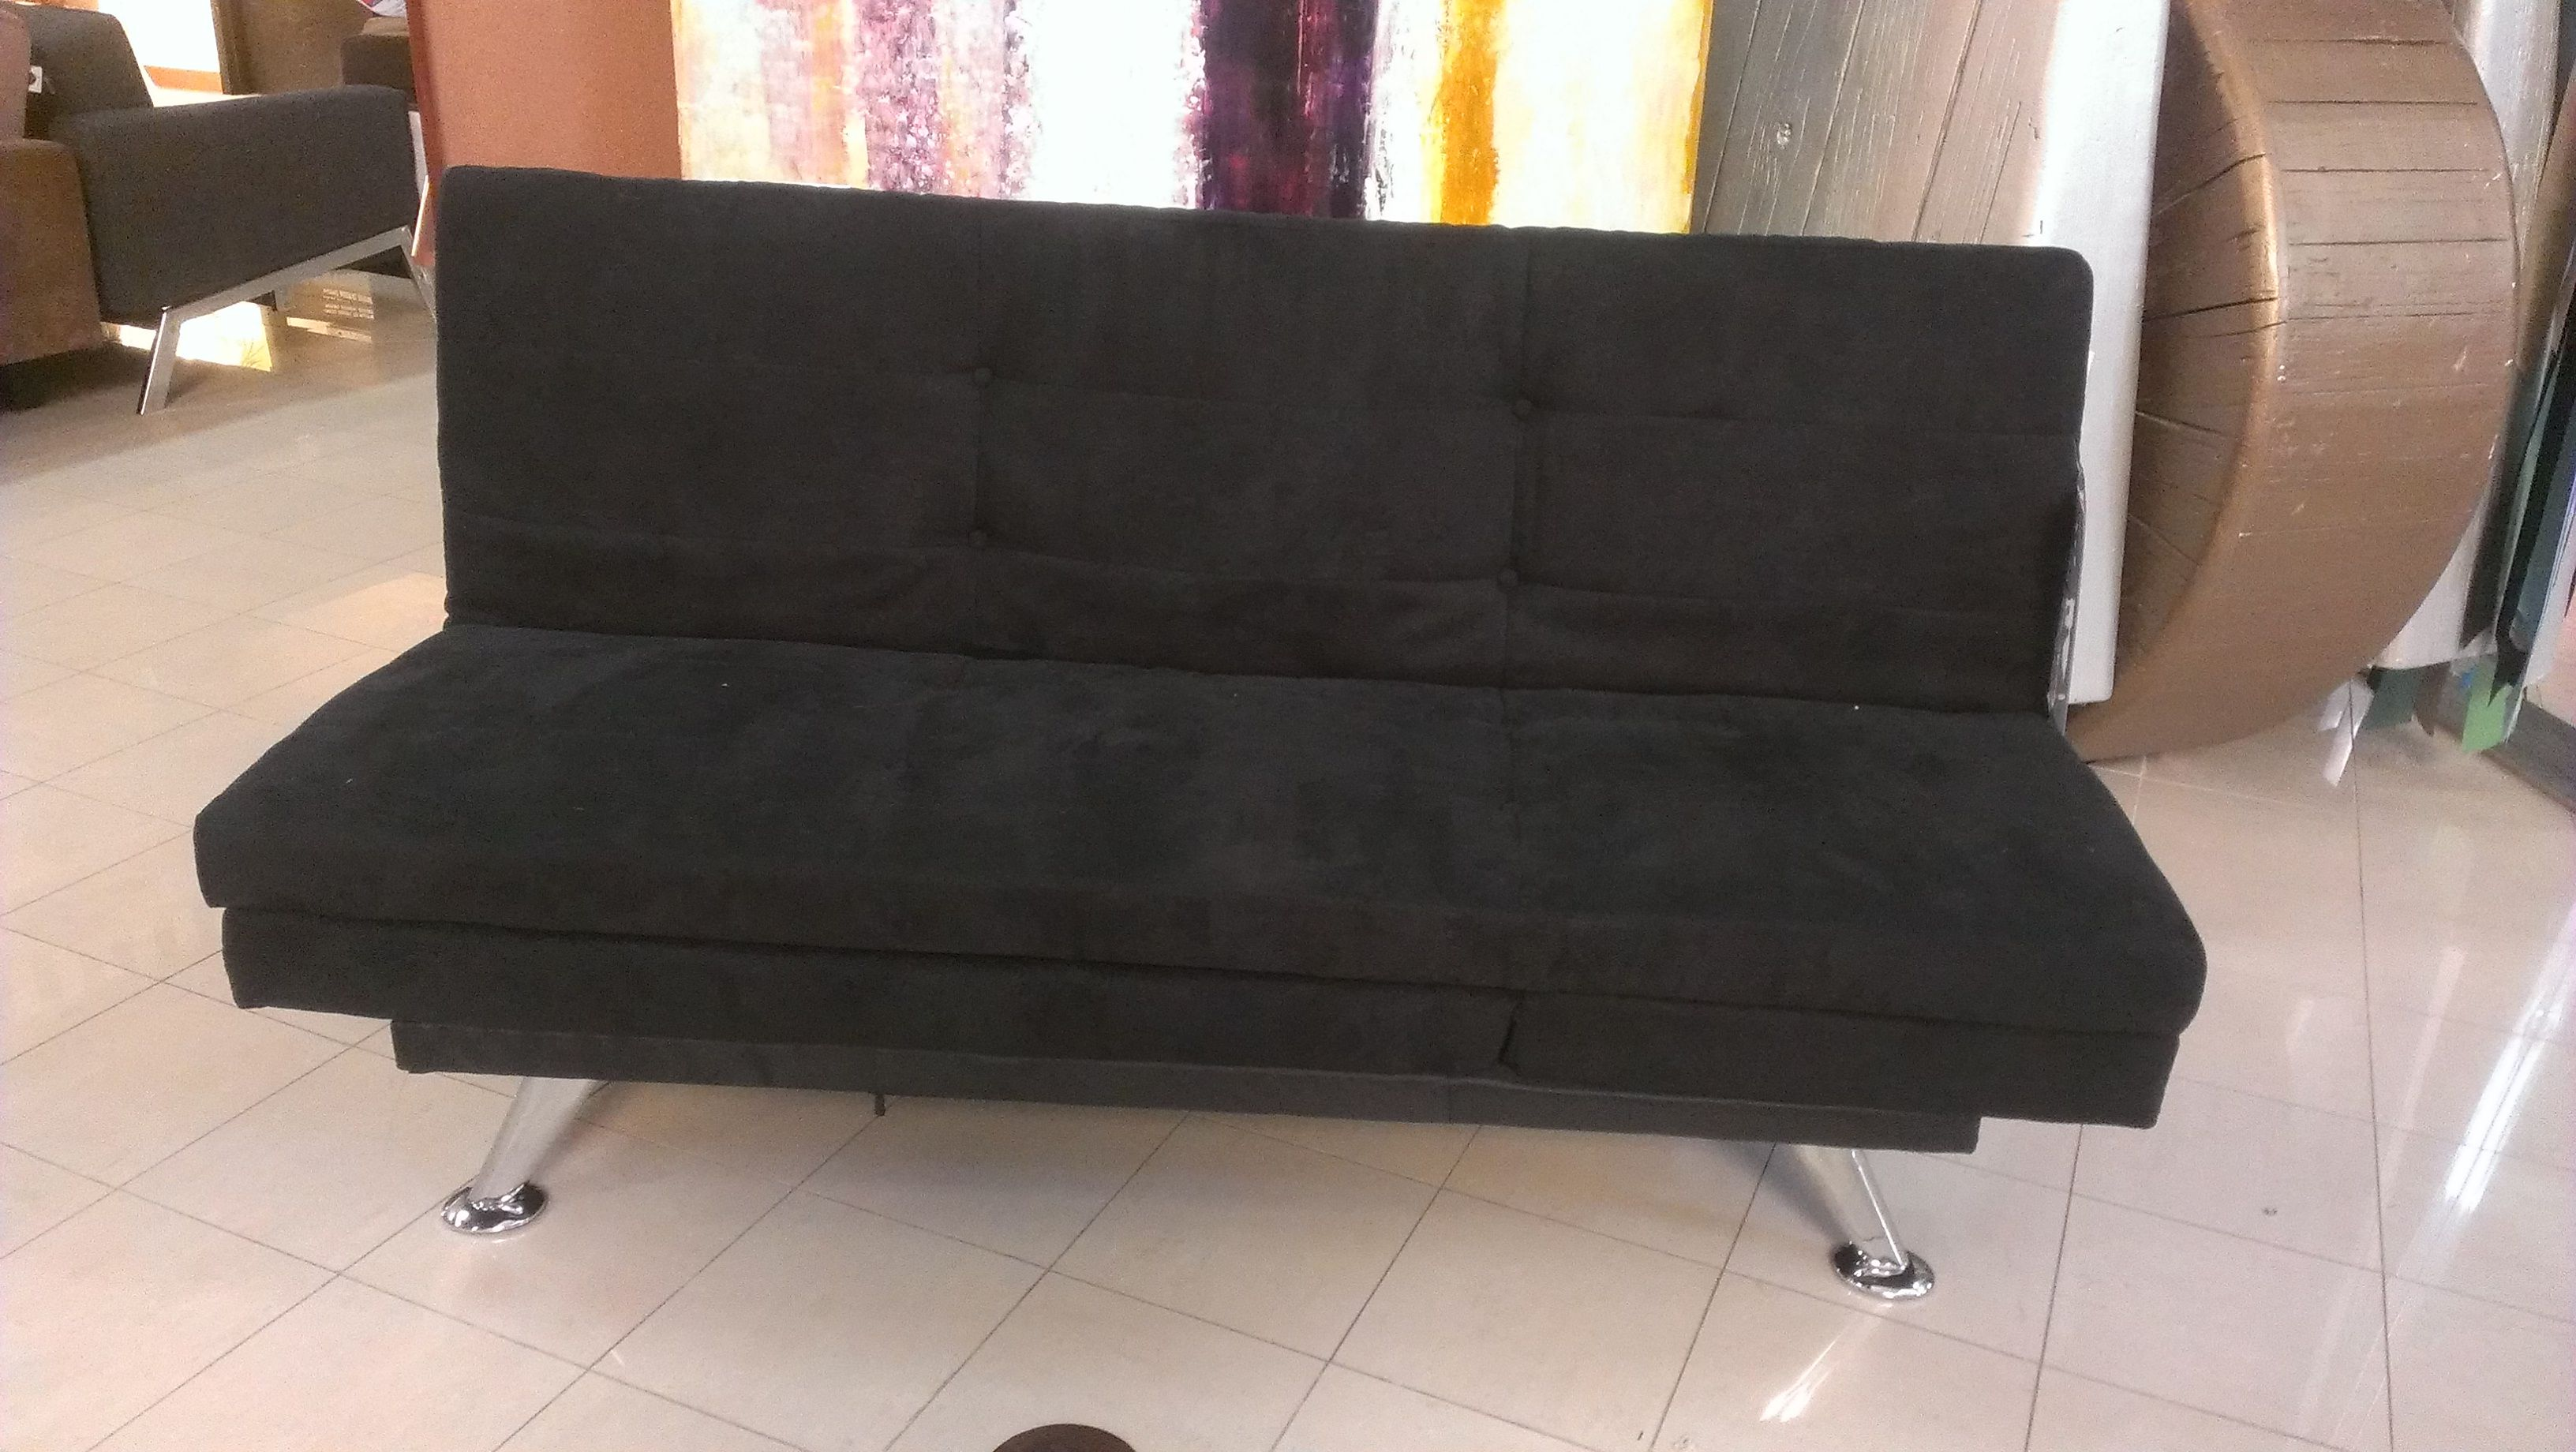 A Sleek Black Futon That Will See You Through College To Your First Apt Houston Tx Gallery Furniture